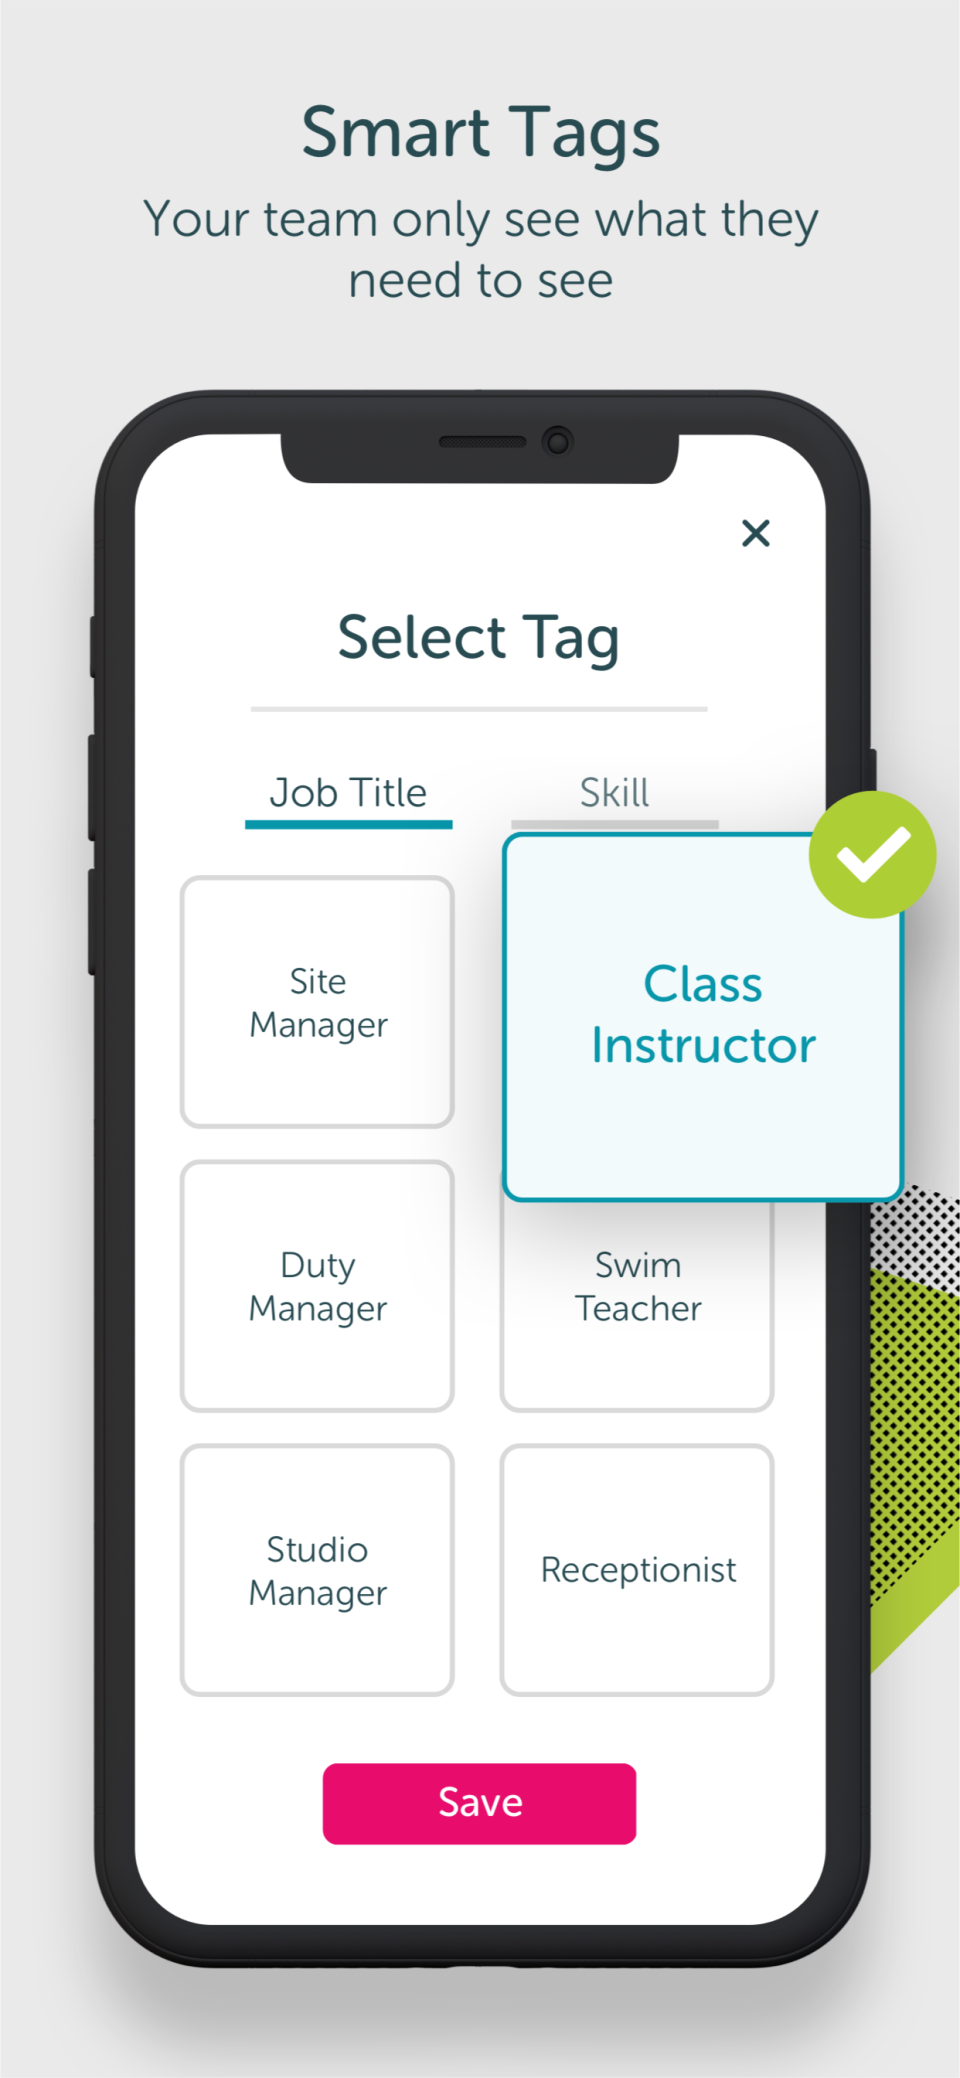 OurPeople Software - Smart Tags